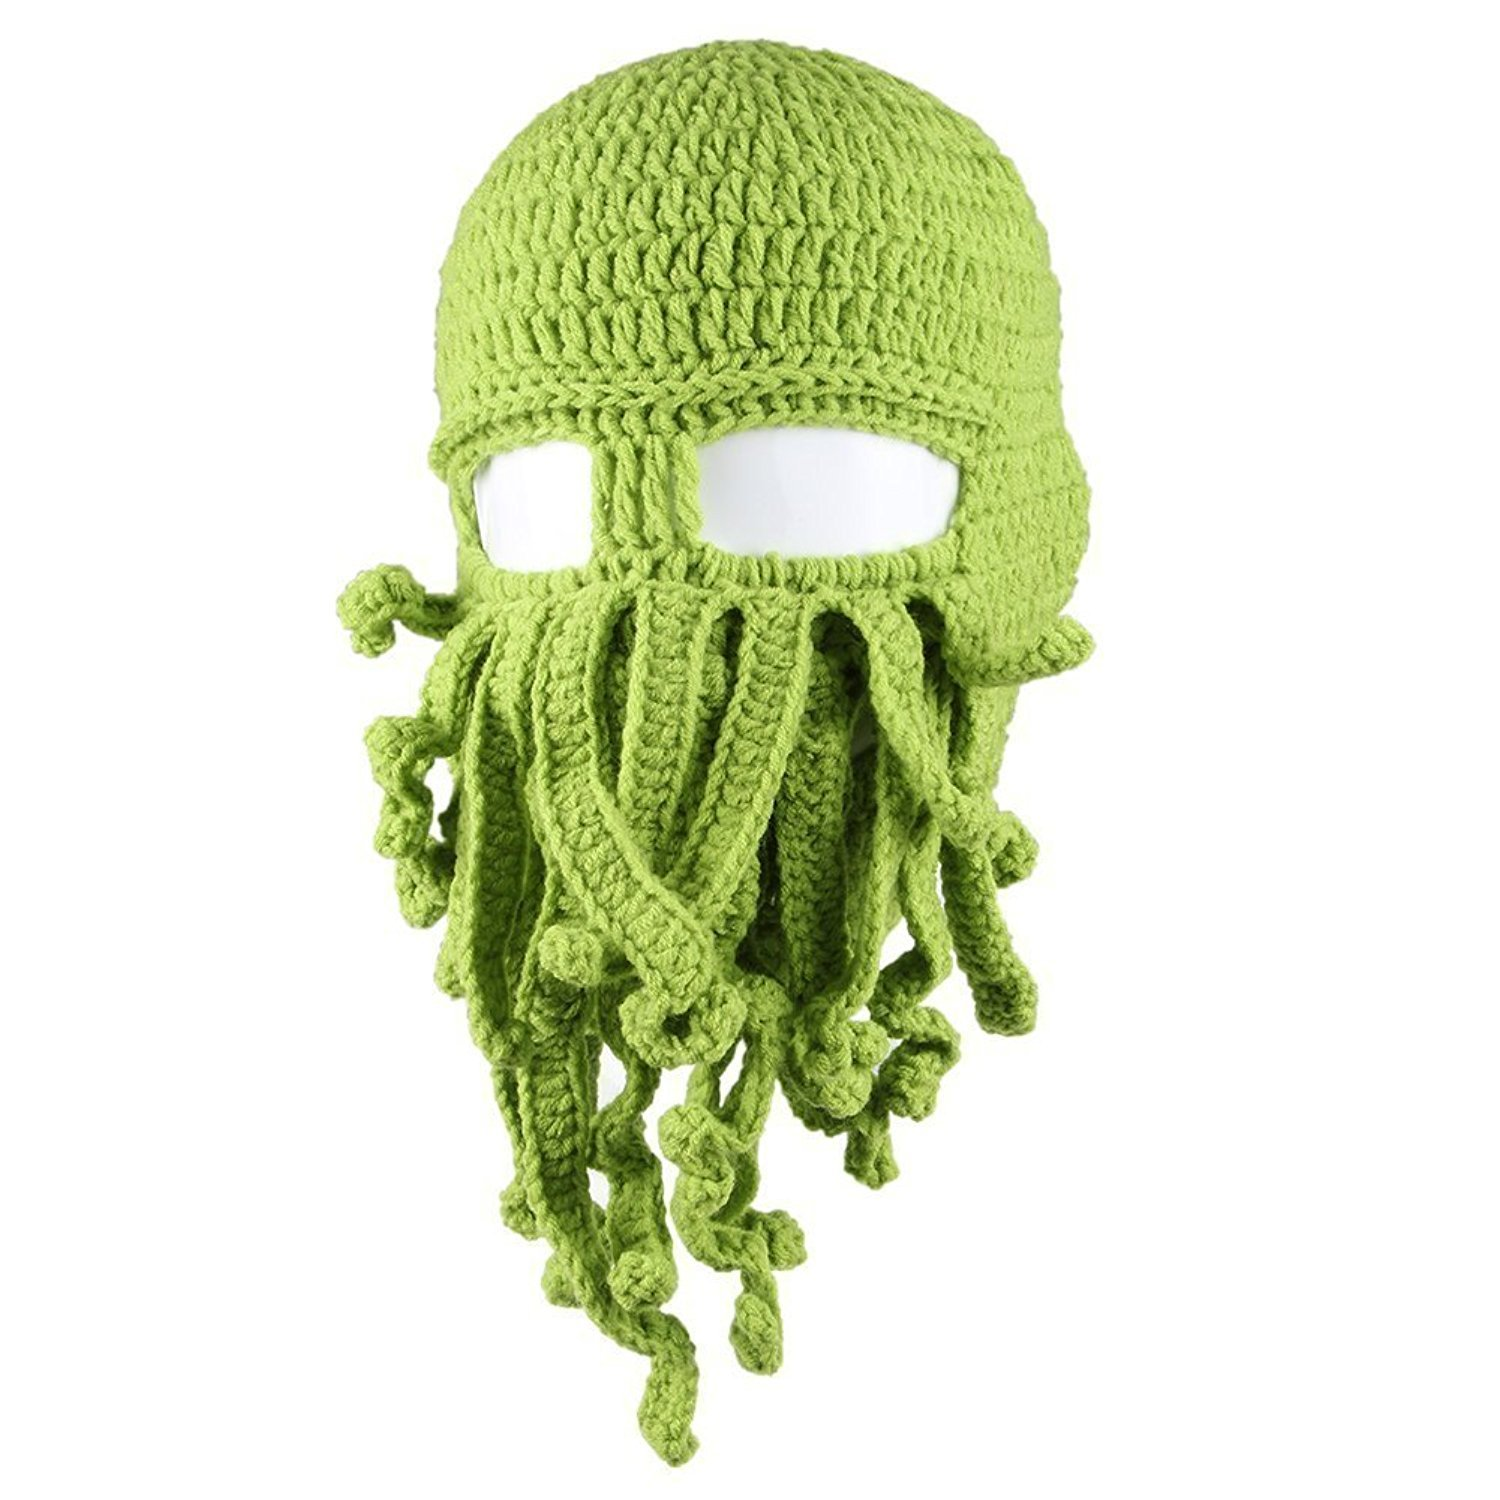 Engerla Unisex-Adult Octopus Knit Cthulhu Barbarian Warm Hats for Winter Ski EP118-01